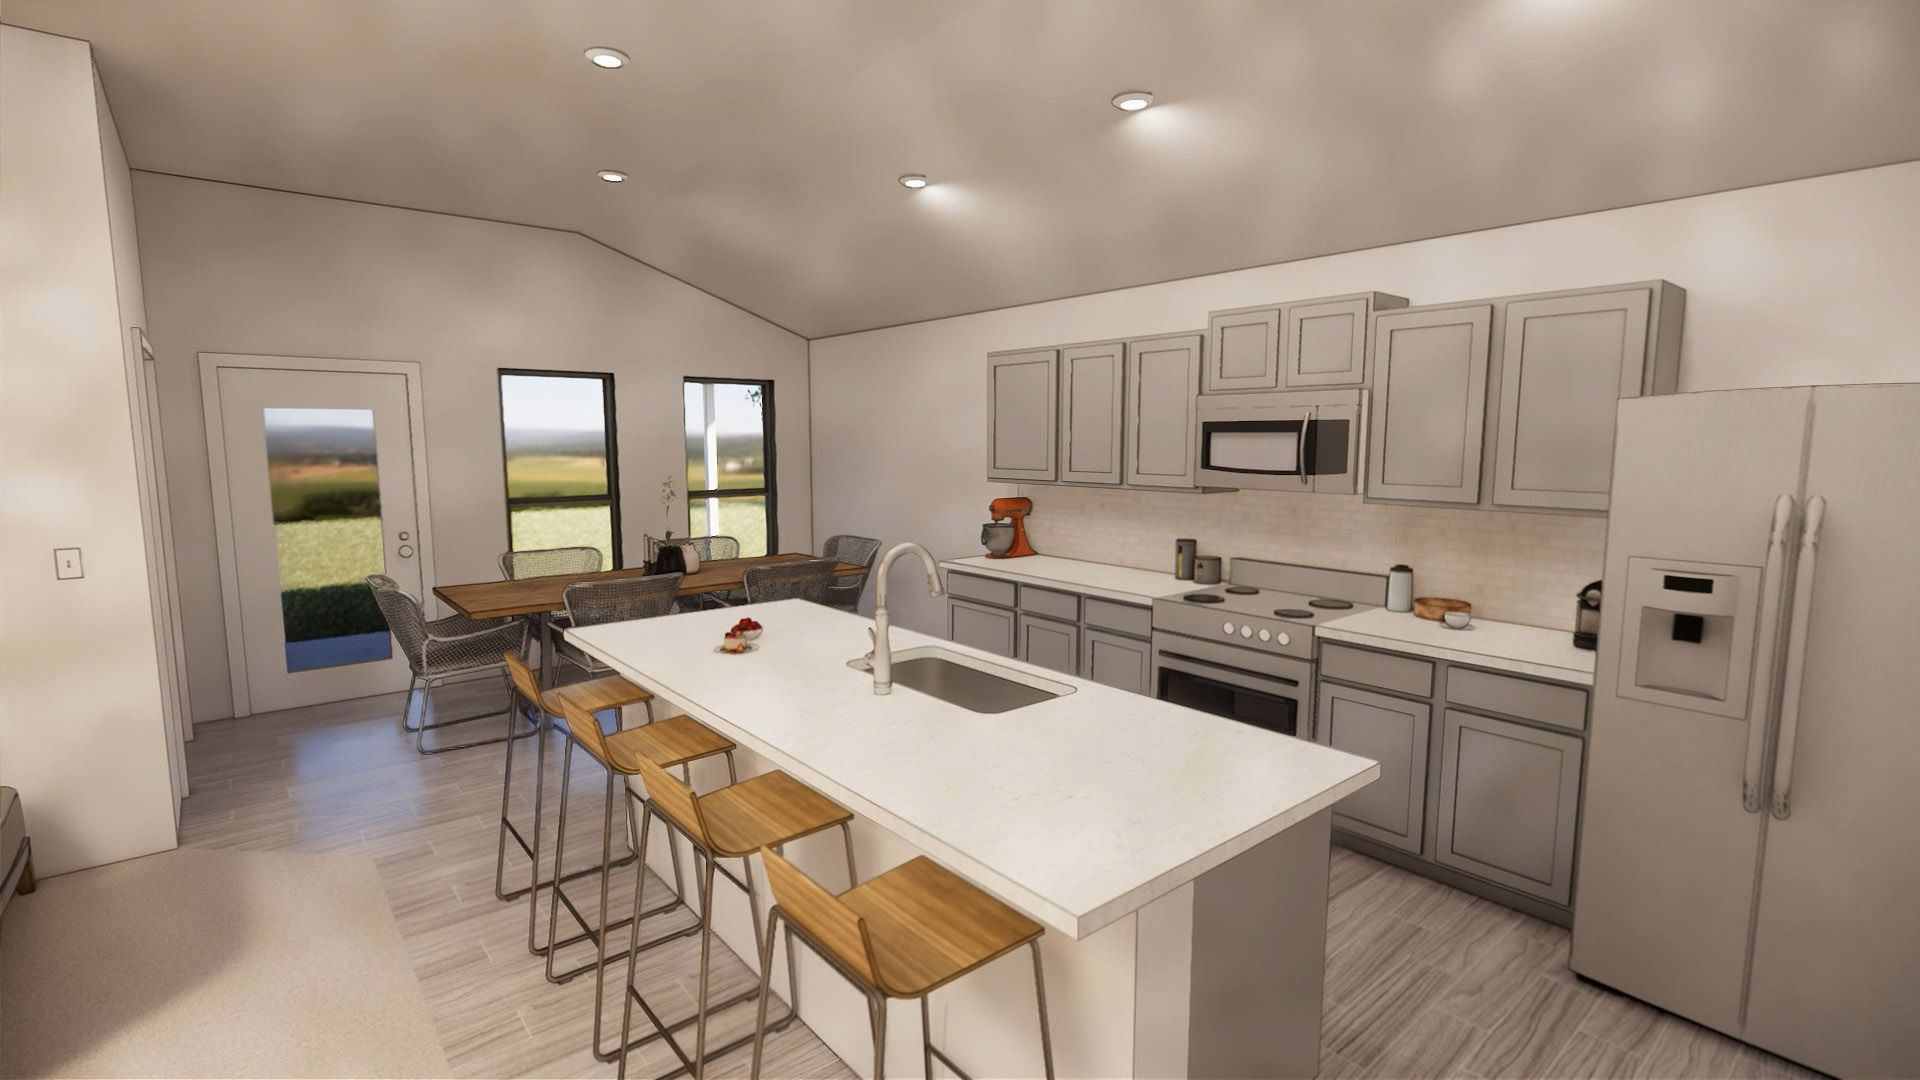 Kitchen featured in the Adalynn By Betenbough Homes in Lubbock, TX